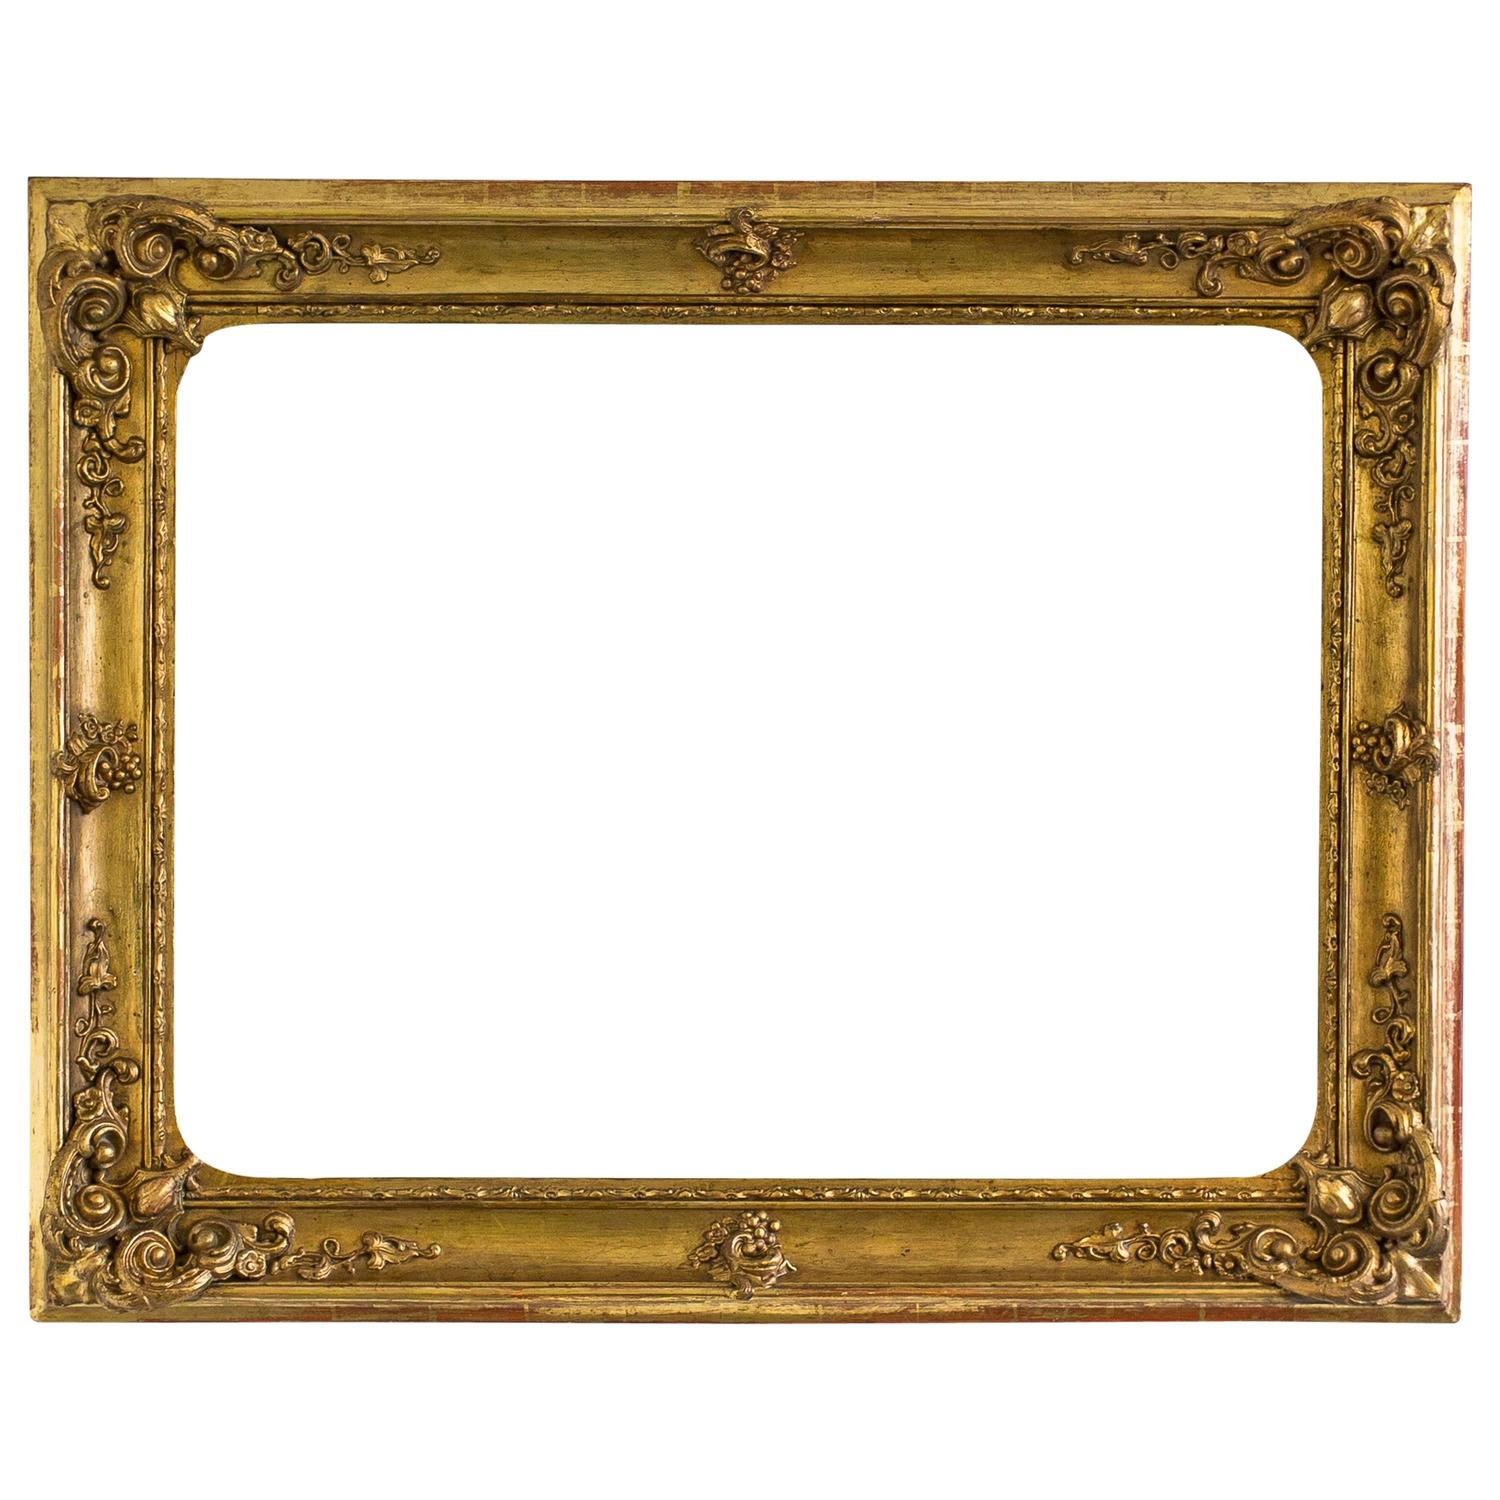 gorgeous large gilded baroque picture frame from circa 1840 for sale at 1stdibs. Black Bedroom Furniture Sets. Home Design Ideas